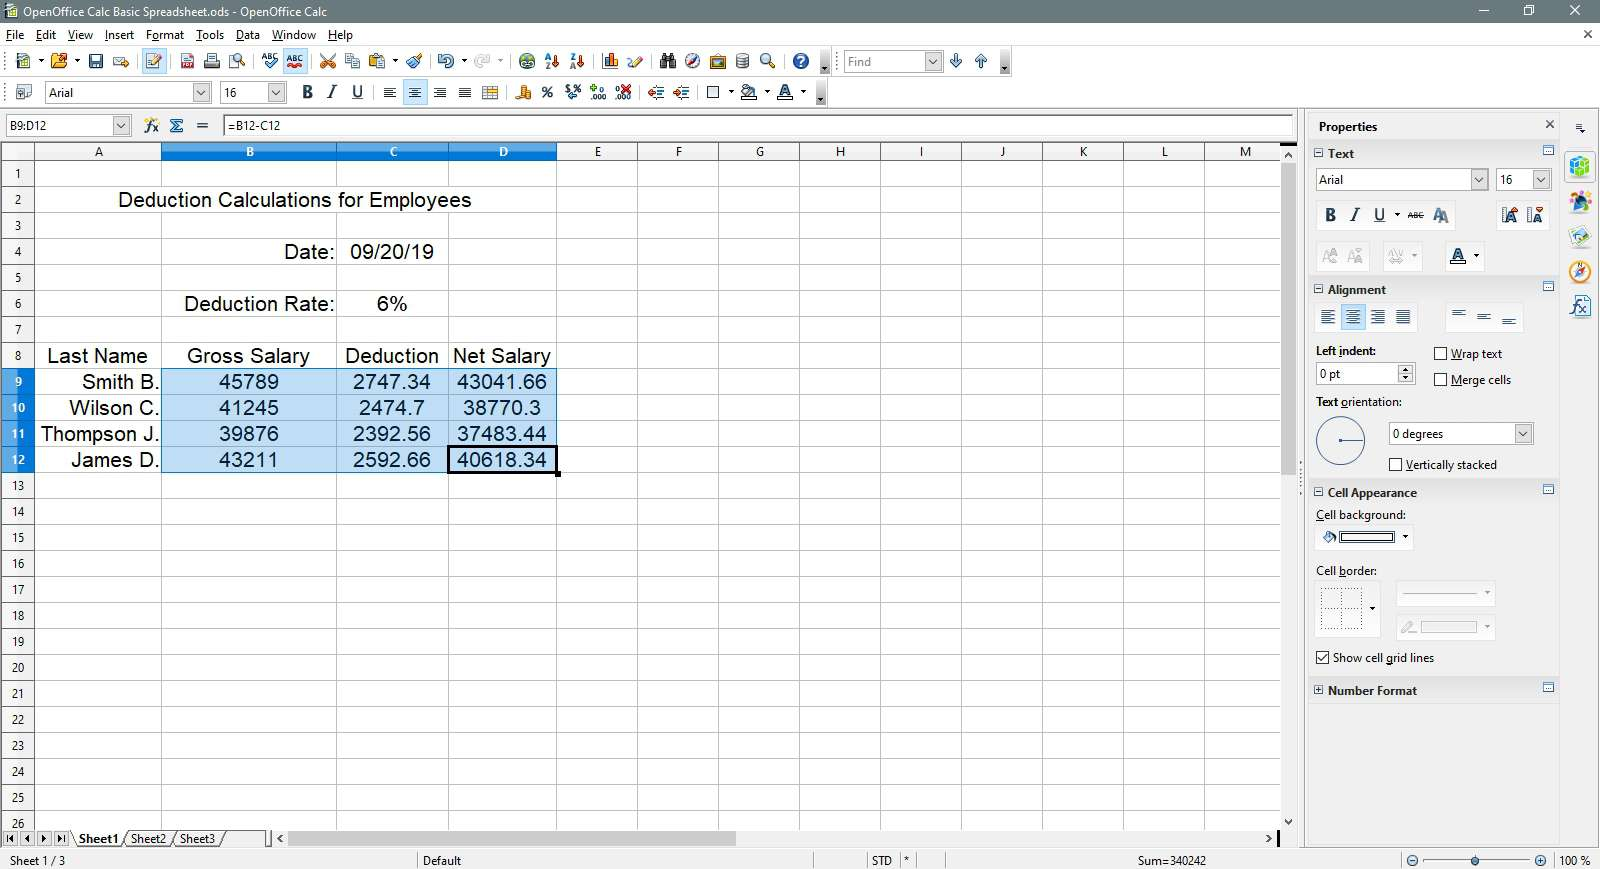 The cells are selected in OpenOffice Calc.